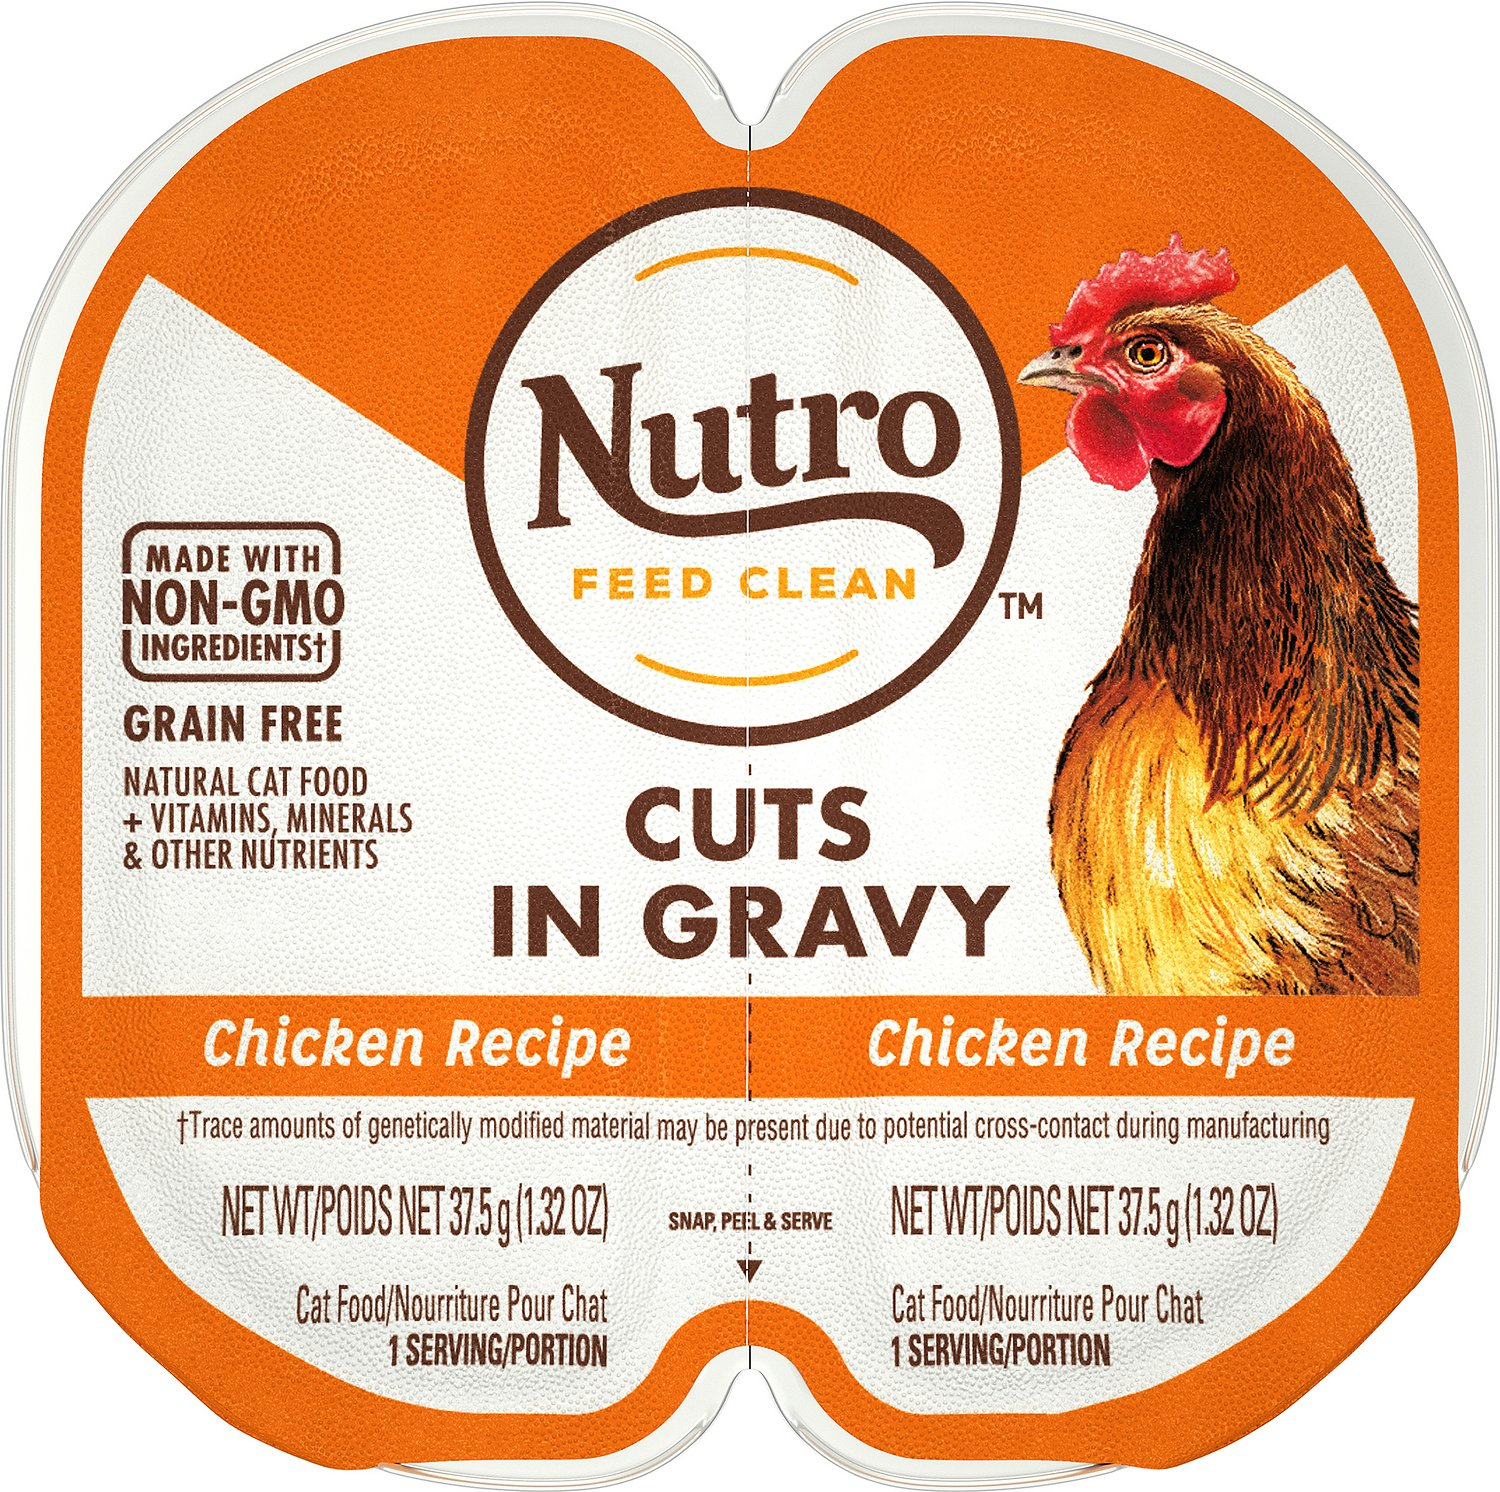 Nutro Perfect Portions Grain-Free Cuts in Gravy Chicken Recipe Cat Food Trays Image